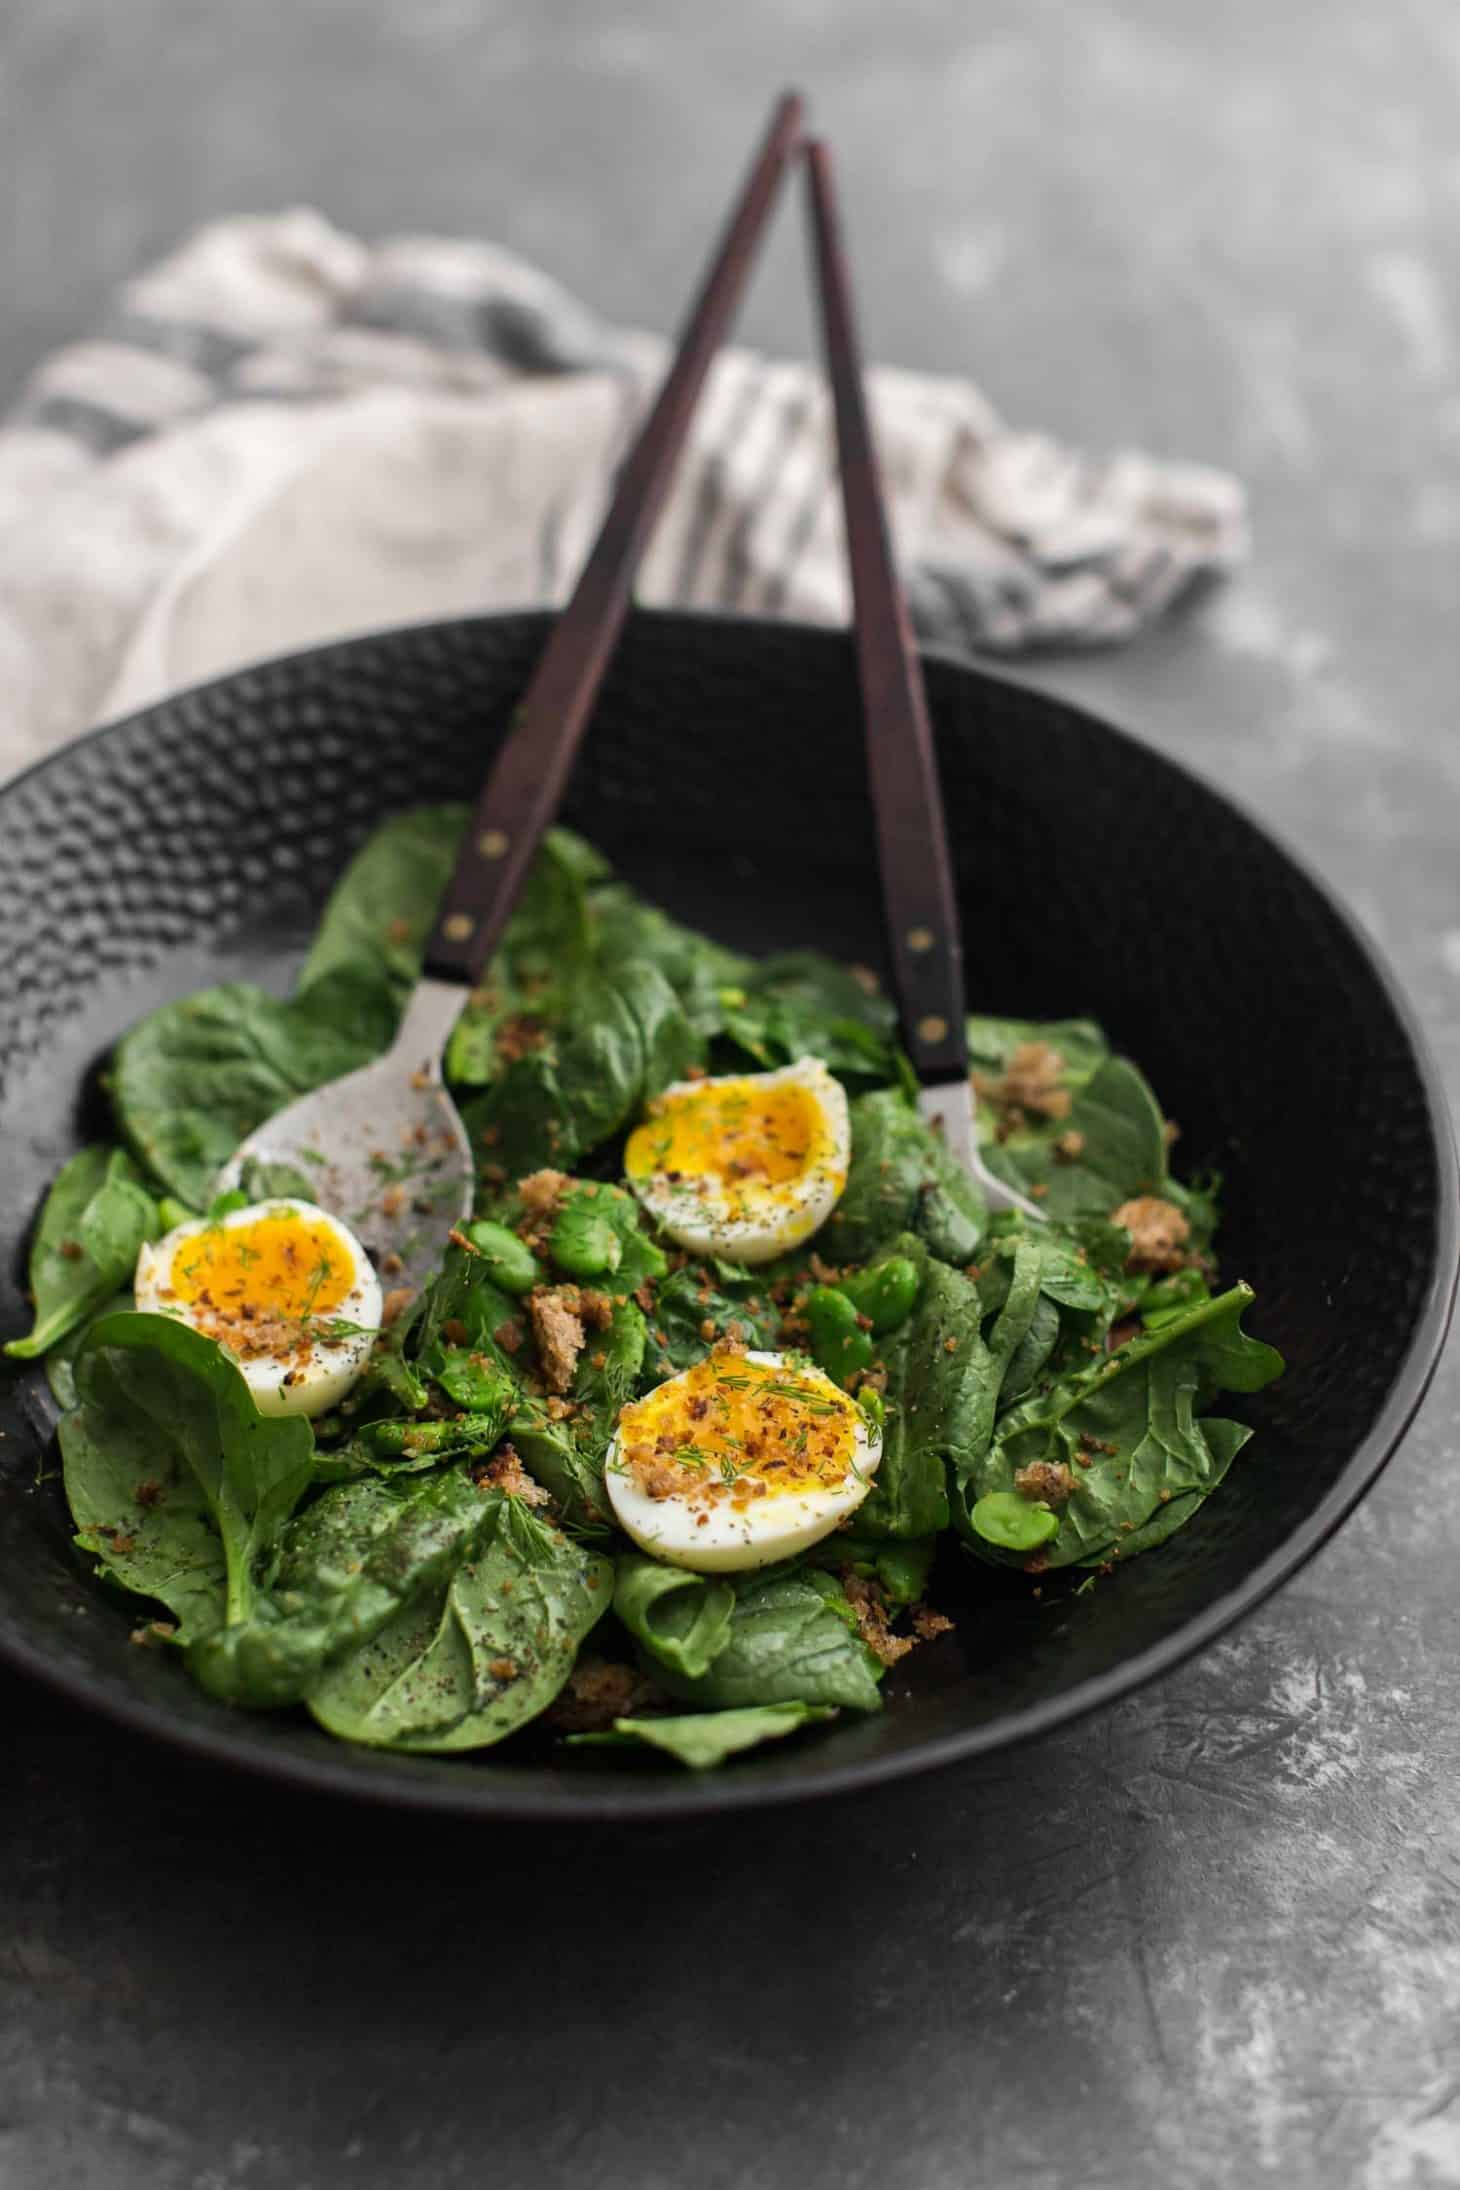 Buttered Fava Bean Salad with Soft-Boiled Eggs and Rye Breadcrumbs | Naturally Ella